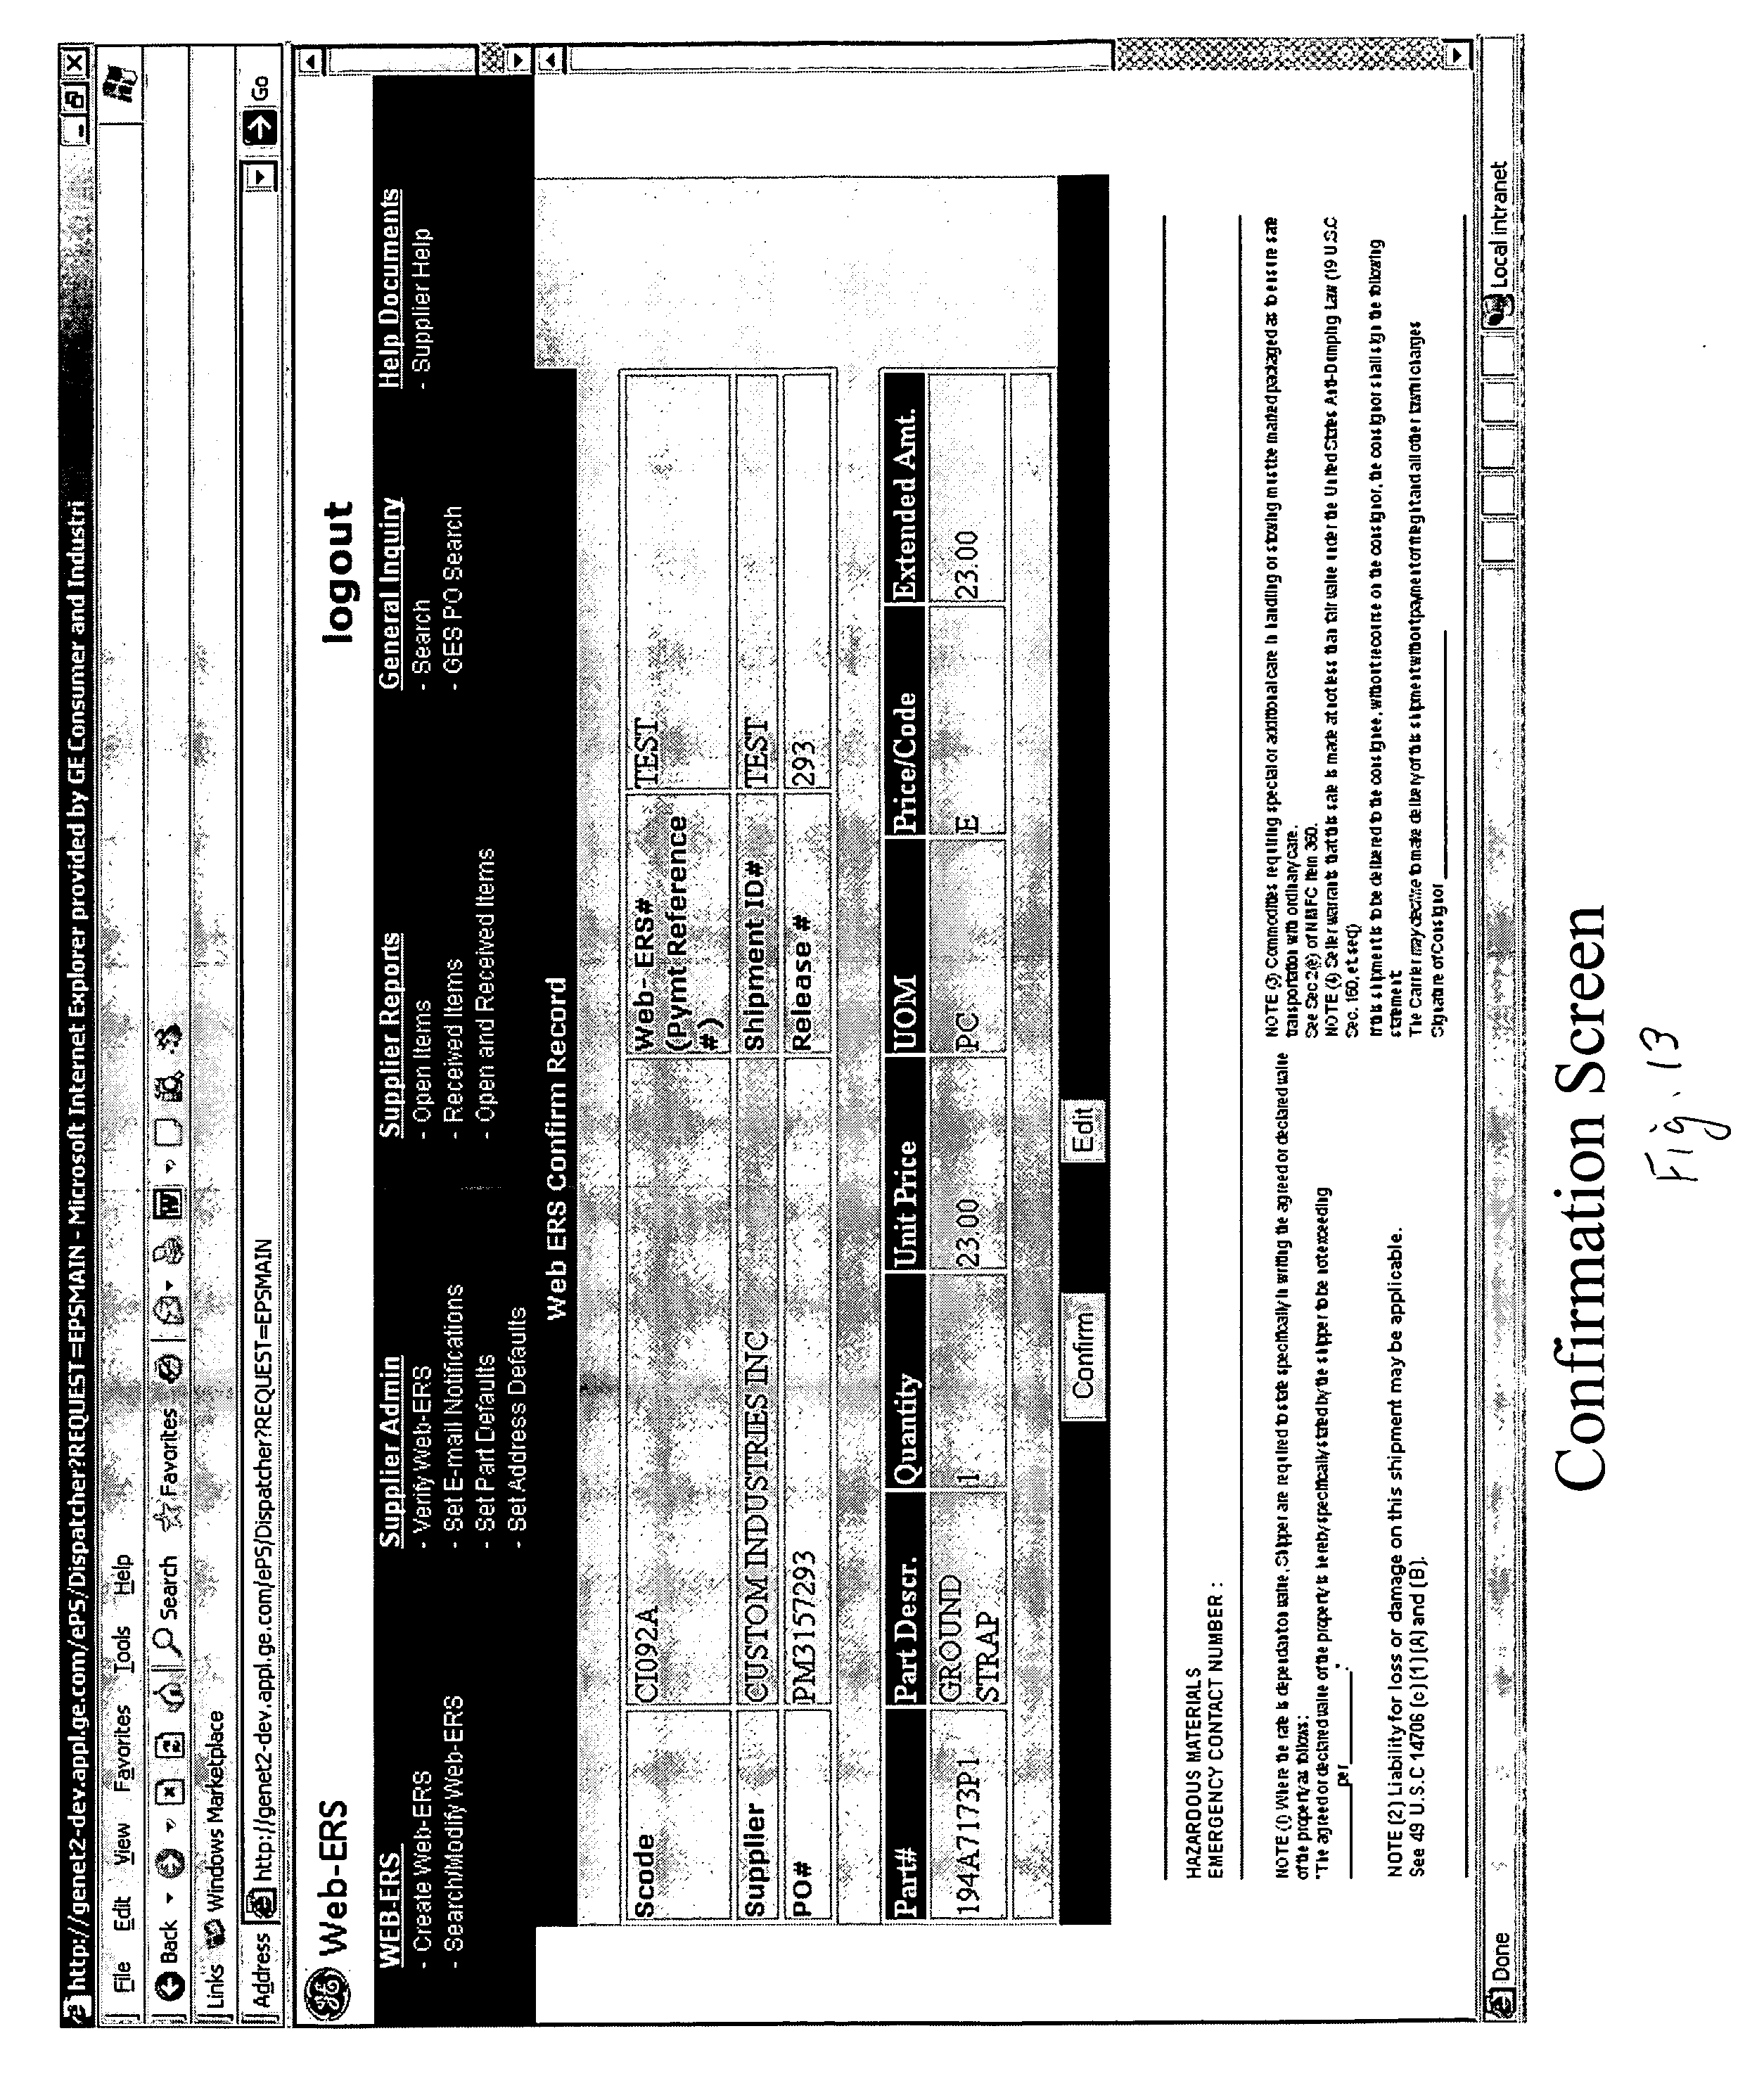 Sample Of Invoice For Payment Excel Patent Us  Process And System For Webbased Evaluated  B2b Invoicing with Simple Invoice Template Uk Patent Drawing How To Create A Receipt Pdf